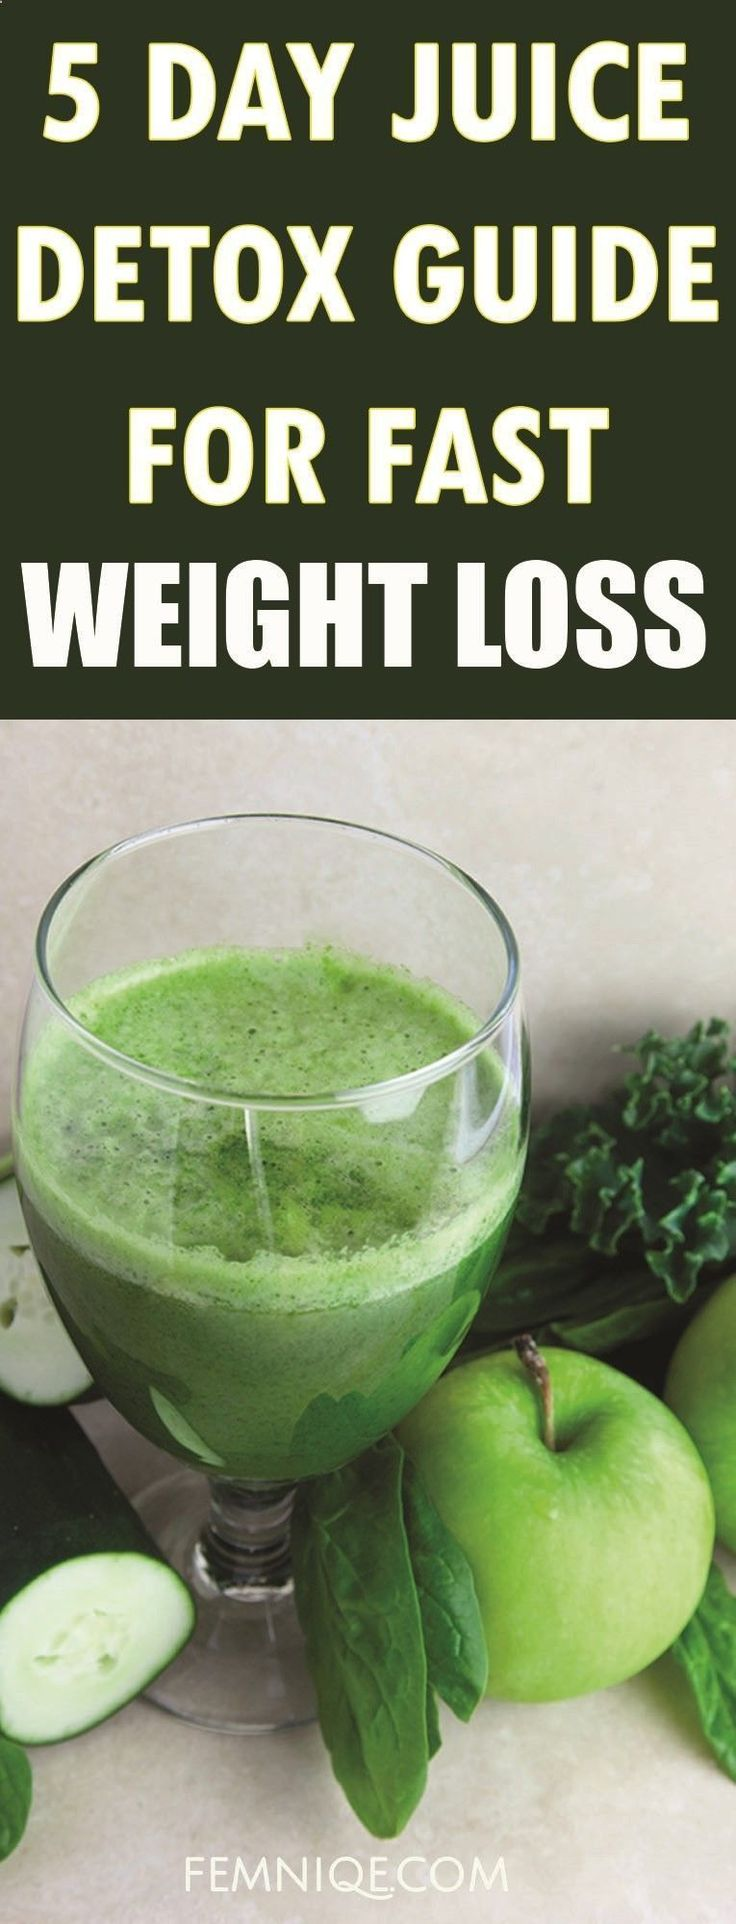 The 25 best 5 day juice cleanse ideas on pinterest 7 day detox 5 day detox guide reset your body and start to melt away stubborn fat fast detox drinks to lose weight fast detox drinks to lose weight fat flush malvernweather